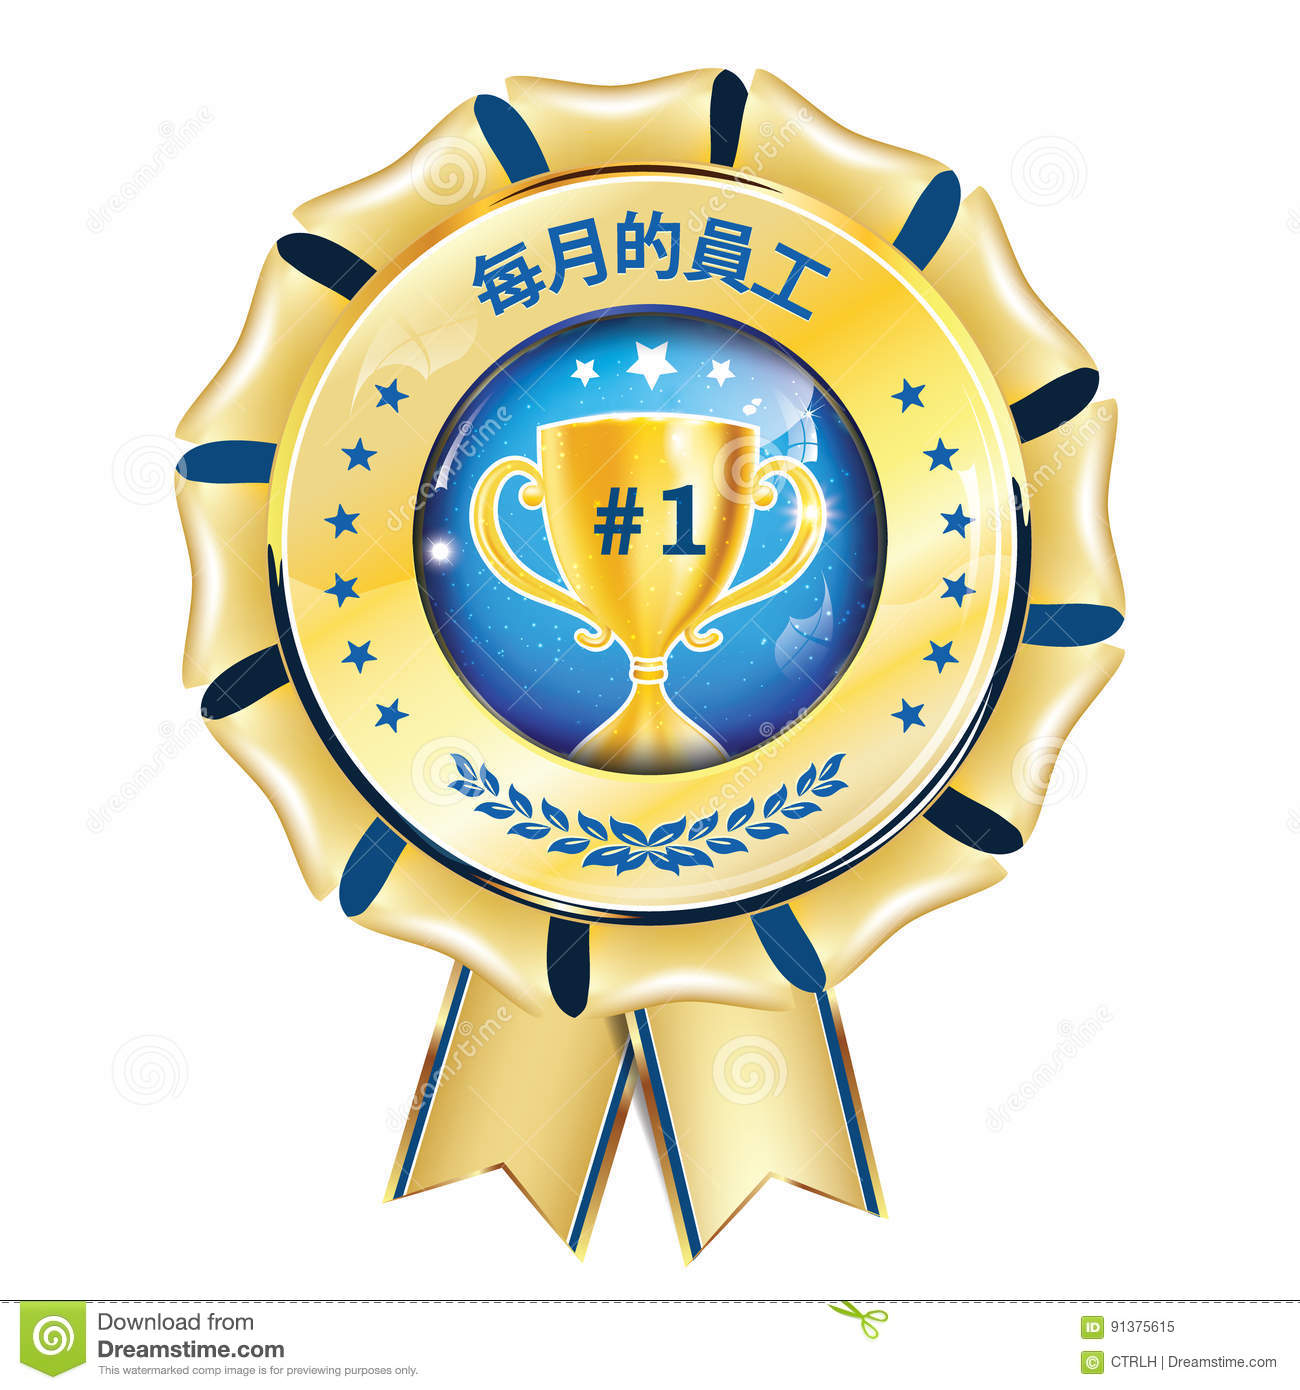 printable ribbon employee of the month chinese language - Employee Of The Month Award